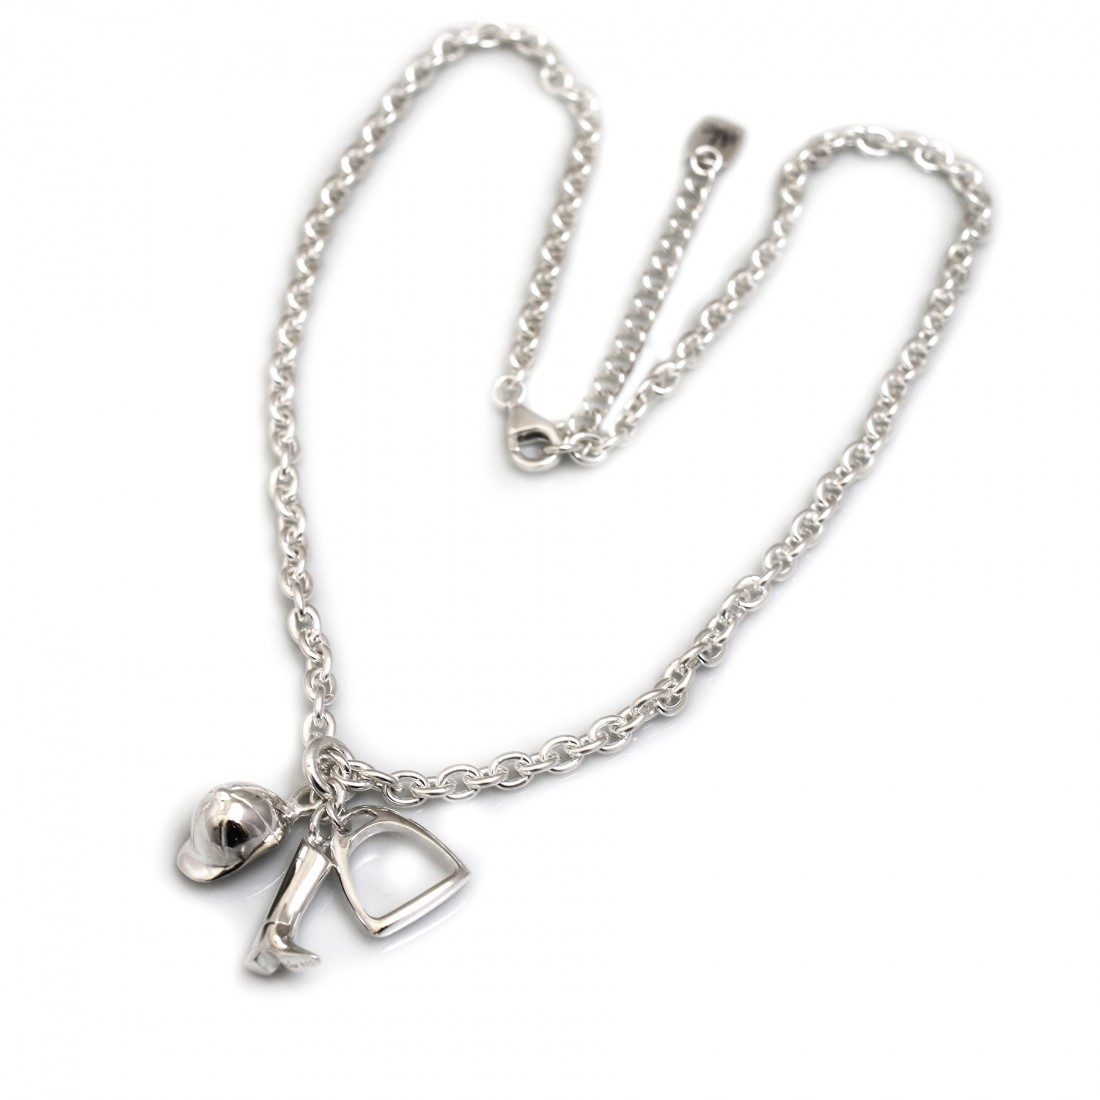 Sterling Silver Fob Necklace with Equestrian Charms